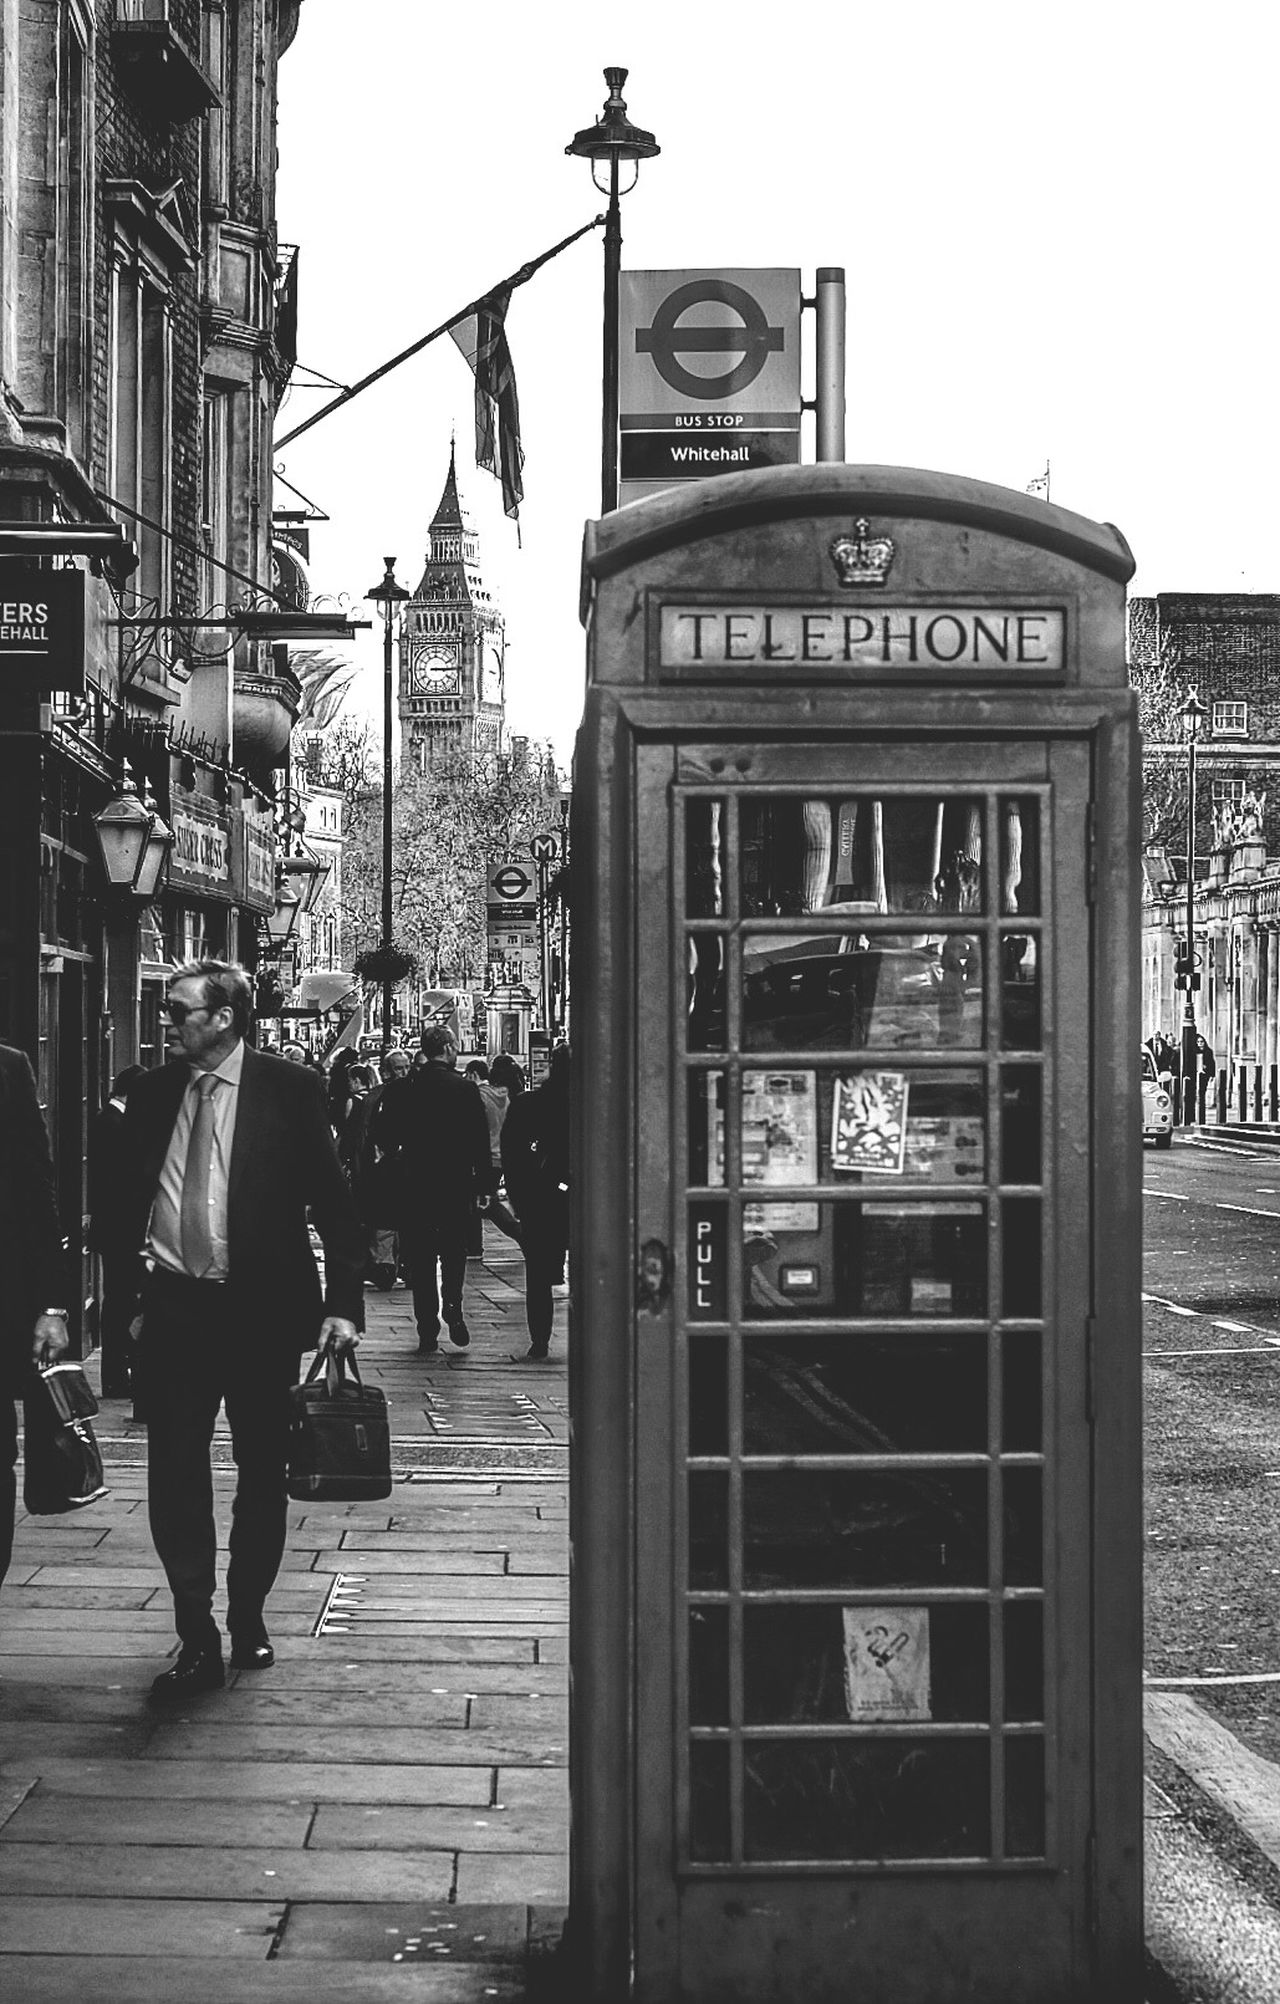 London London LONDON❤ Built Structure Architecture City Street Building Exterior Outdoors Day Week On Eyeem Full Length Sky People Adult Phone Booth